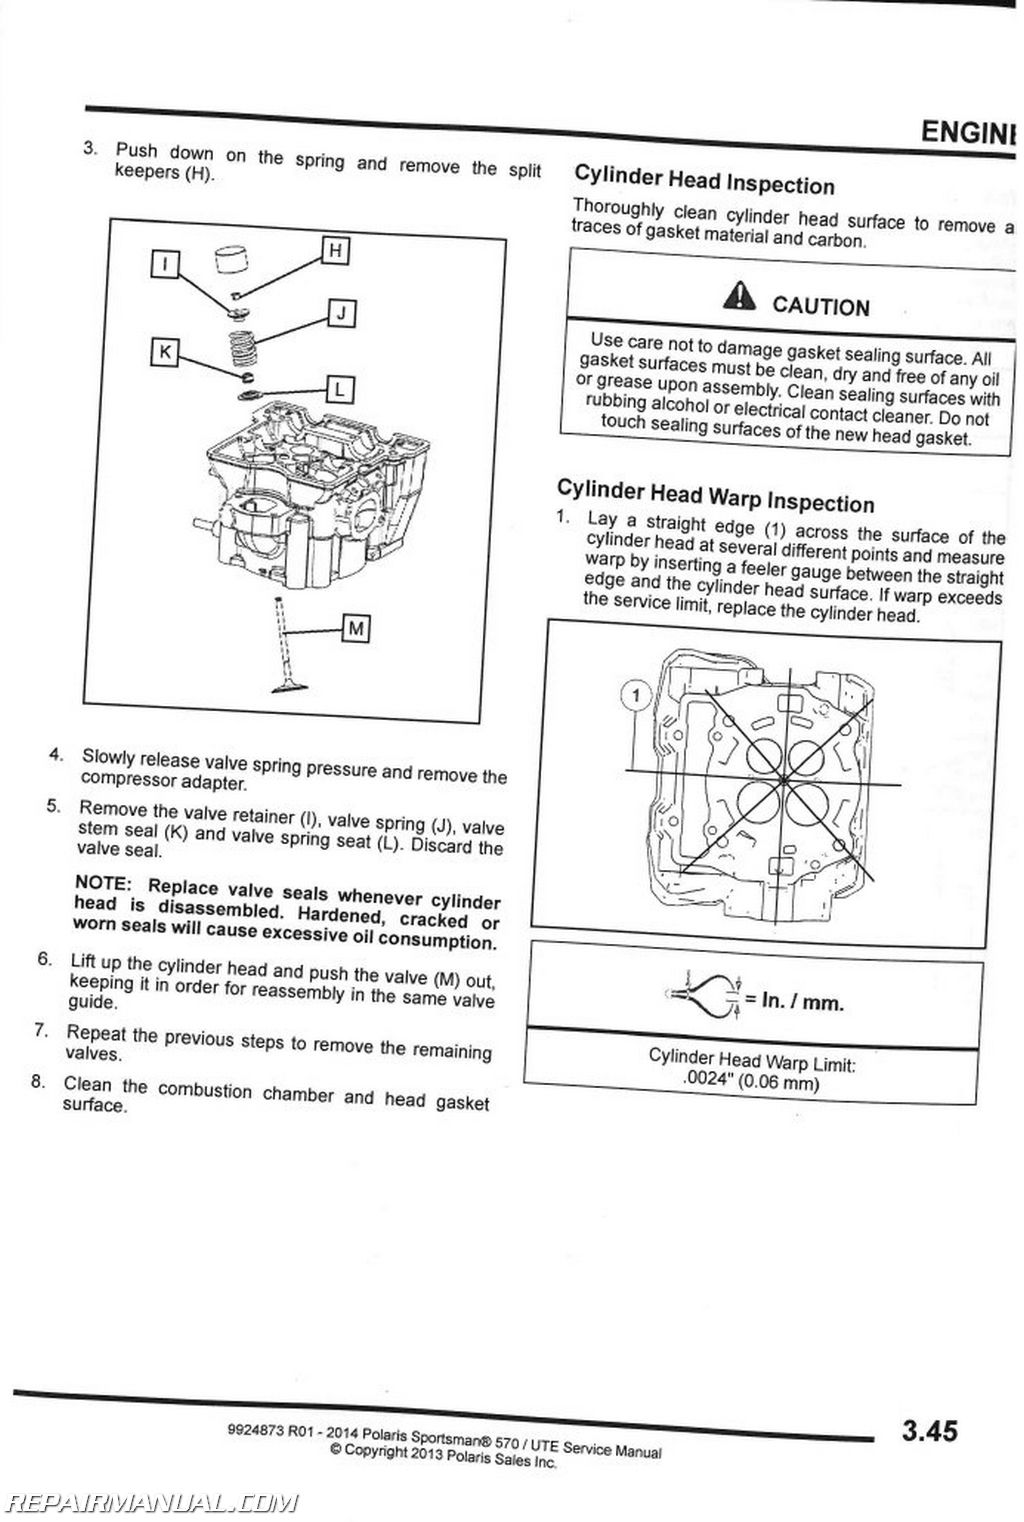 Wiring Diagram For 97 Polaris Scrambler 400 together with 285768 Polaris 1988 250 Trailboss Help in addition Mag ic Switch Wiring Diagram Polaris 500 Ho in addition 7sb9t Need Rewire Solenoid Pack Warn M8000 Winch furthermore Polaris 700 Engine Diagram Coolant Pages. on 2013 polaris ranger wiring diagram